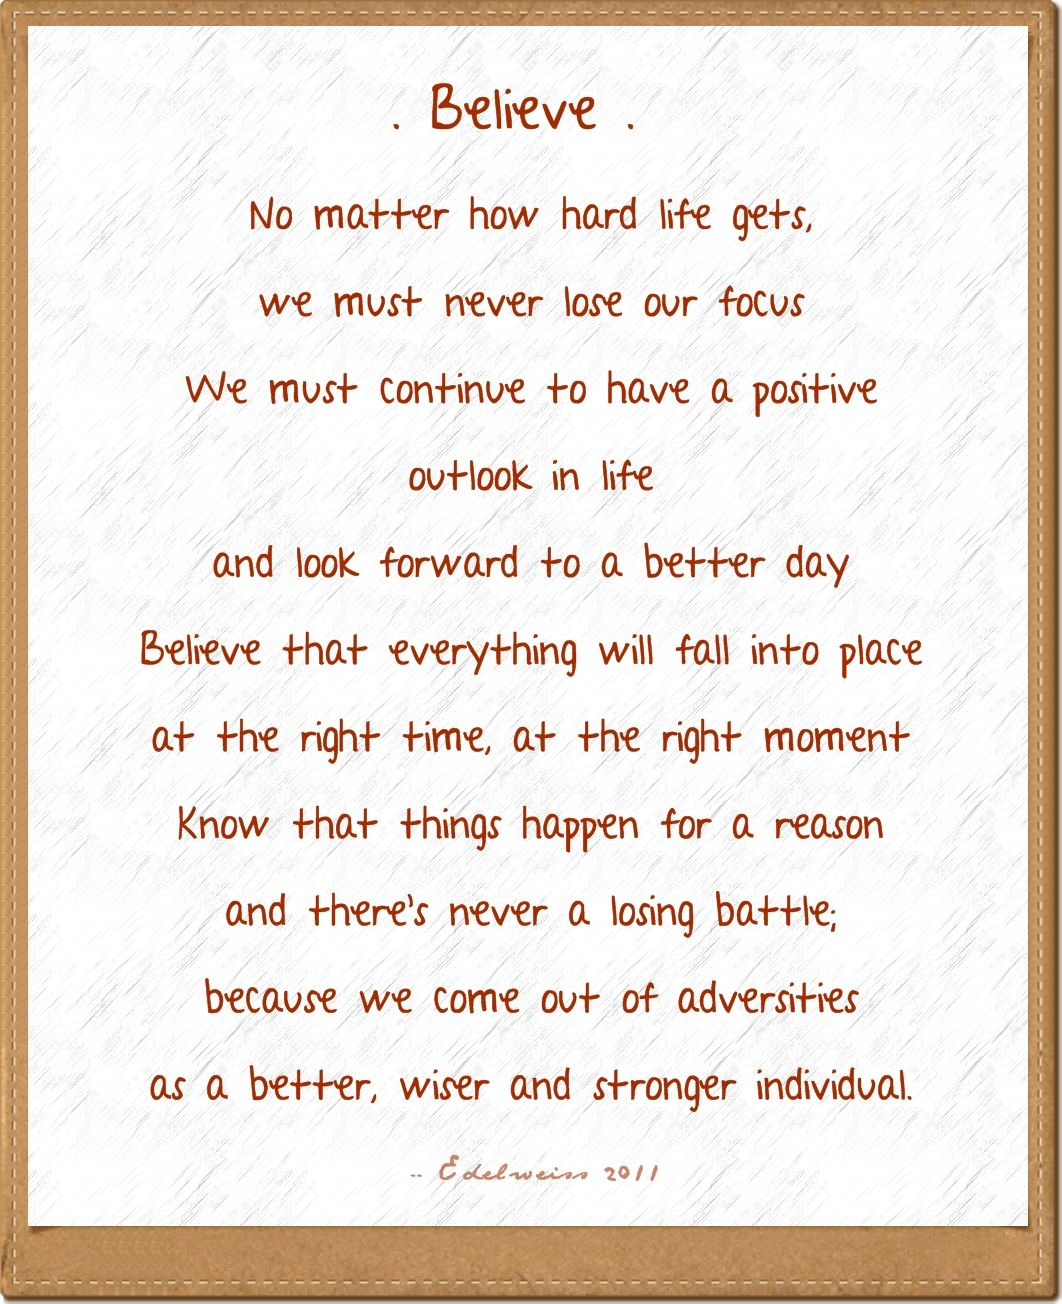 Quotes And Poems: Believe Quotes, Life